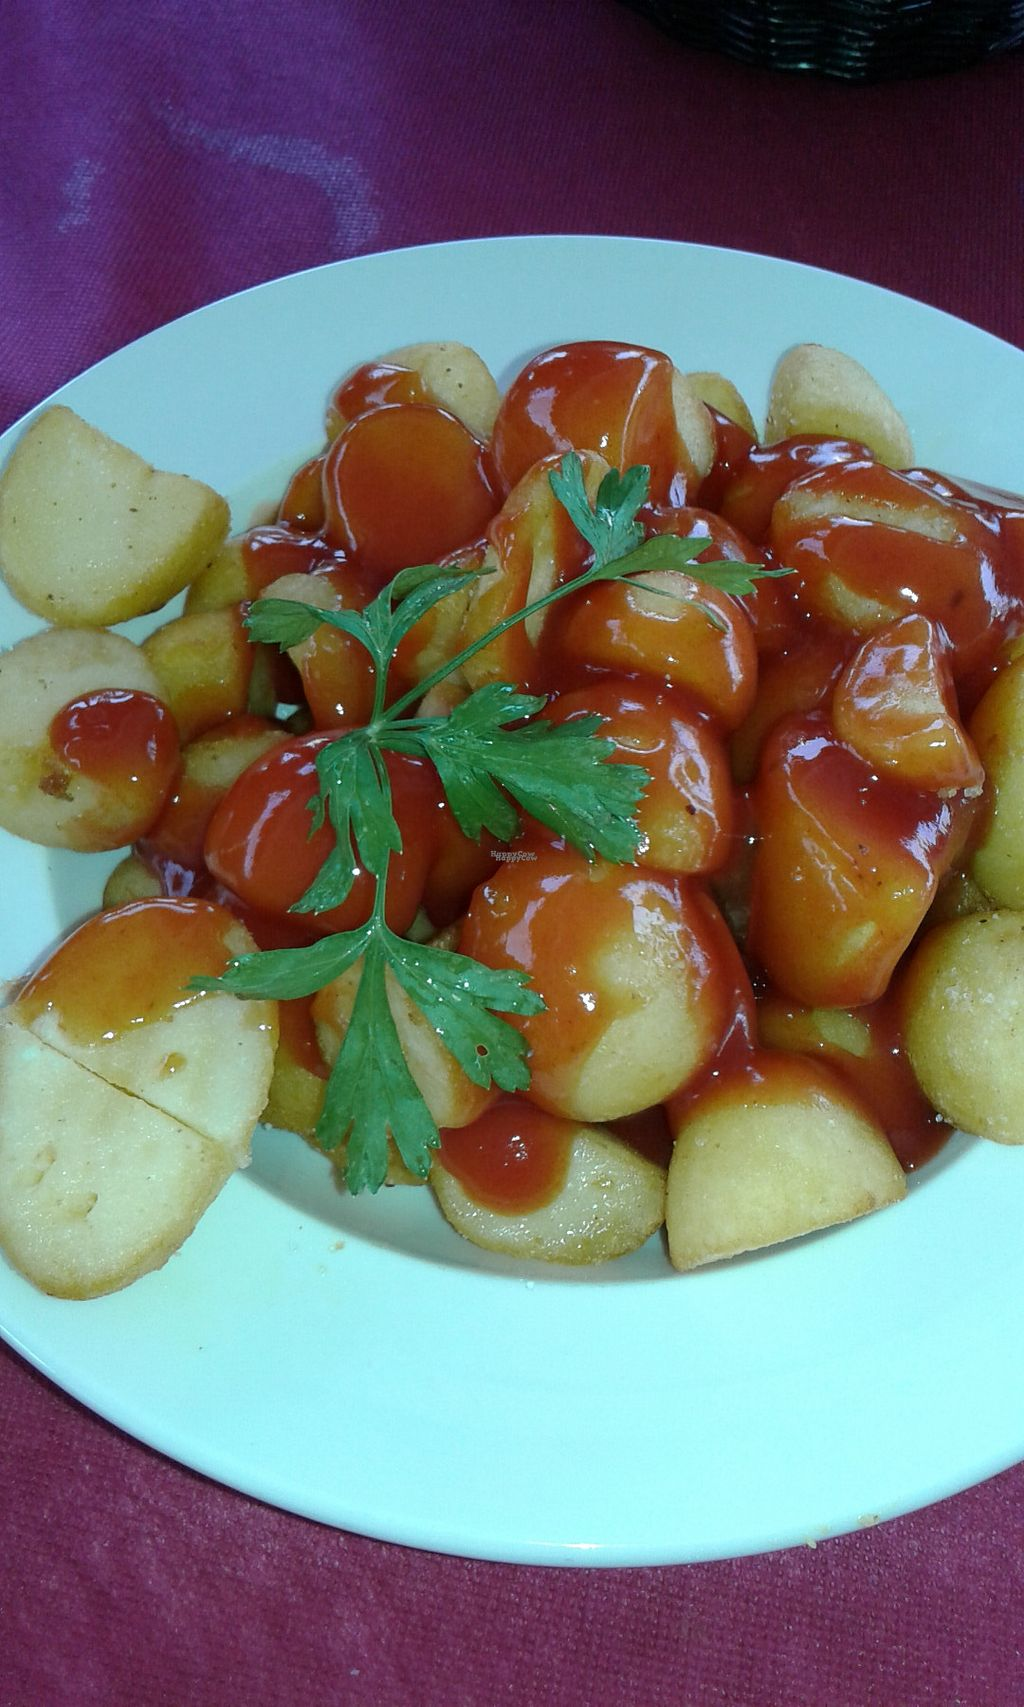 """Photo of Svarog  by <a href=""""/members/profile/Senora53"""">Senora53</a> <br/>Patatas Bravas home made and fresh very good price and delicios big ration <br/> October 8, 2016  - <a href='/contact/abuse/image/63185/180647'>Report</a>"""